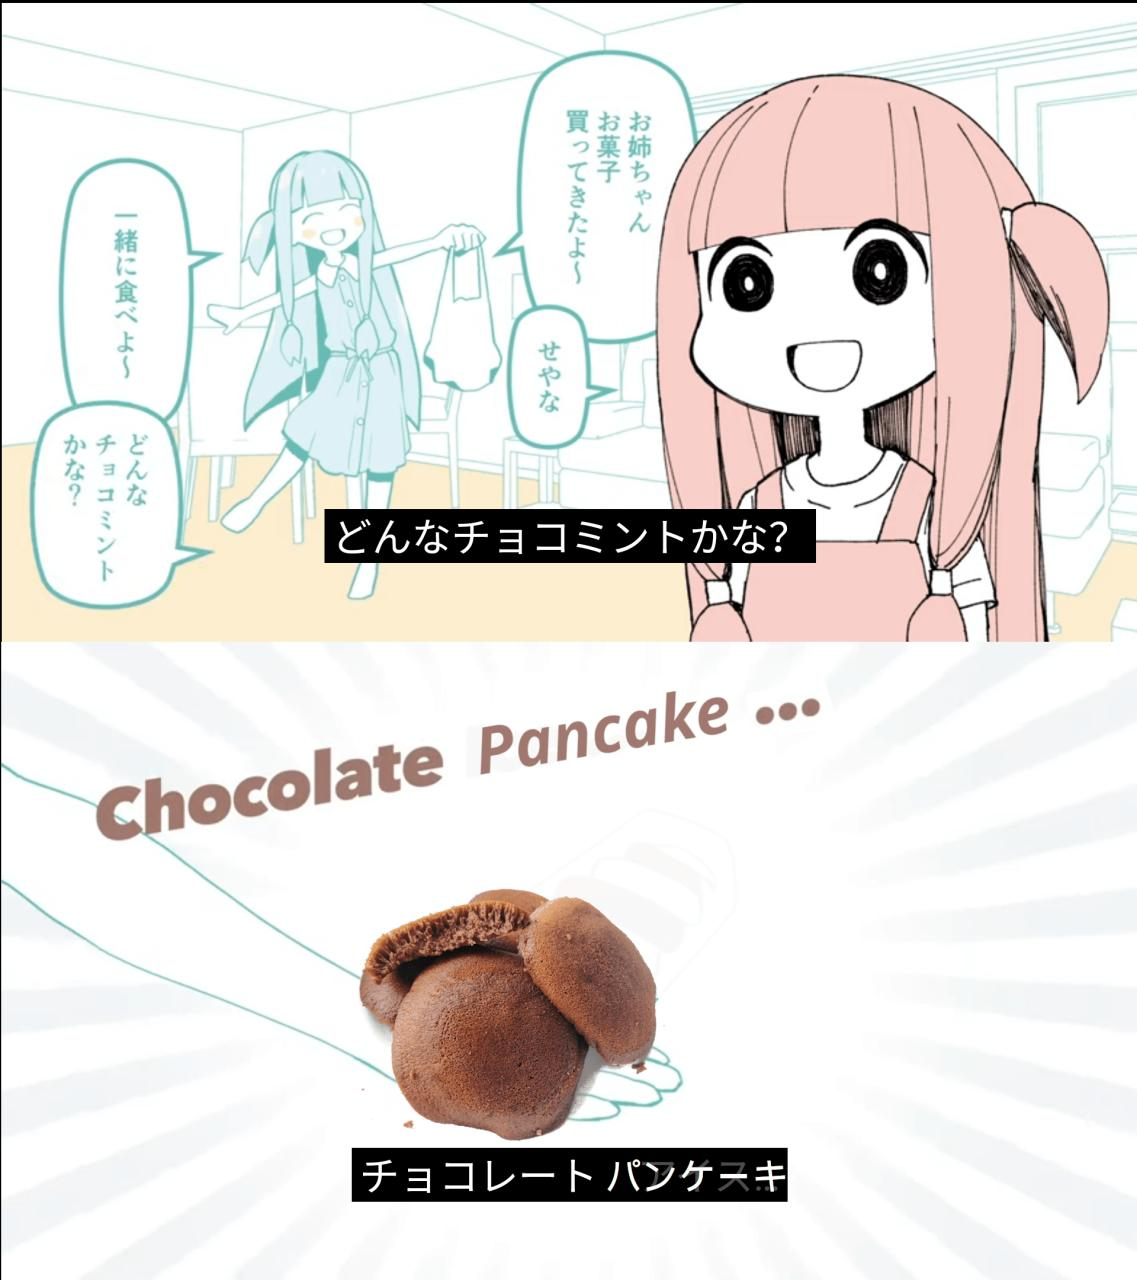 Chocolate Pancake 😂